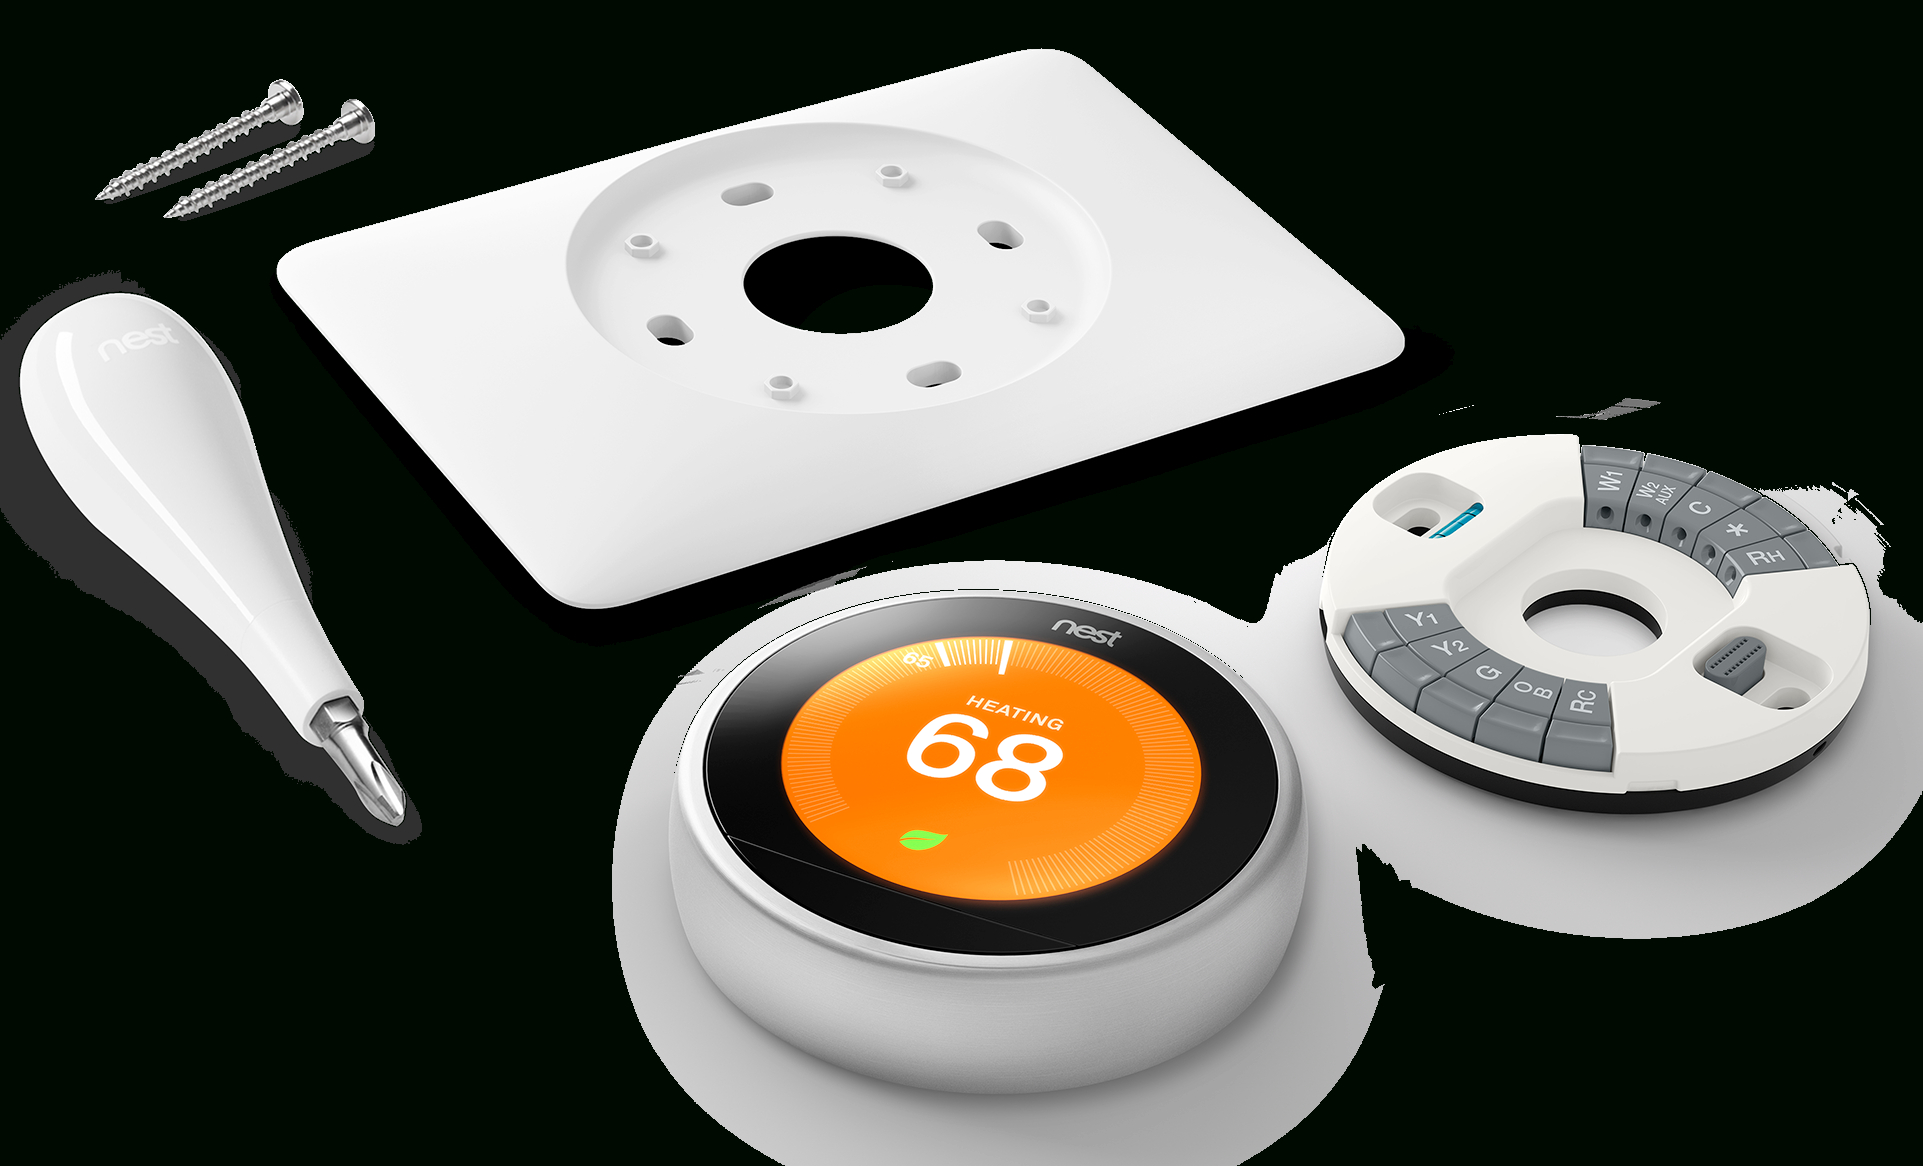 How To Install Your Nest Thermostat - Nest E Wiring Diagram